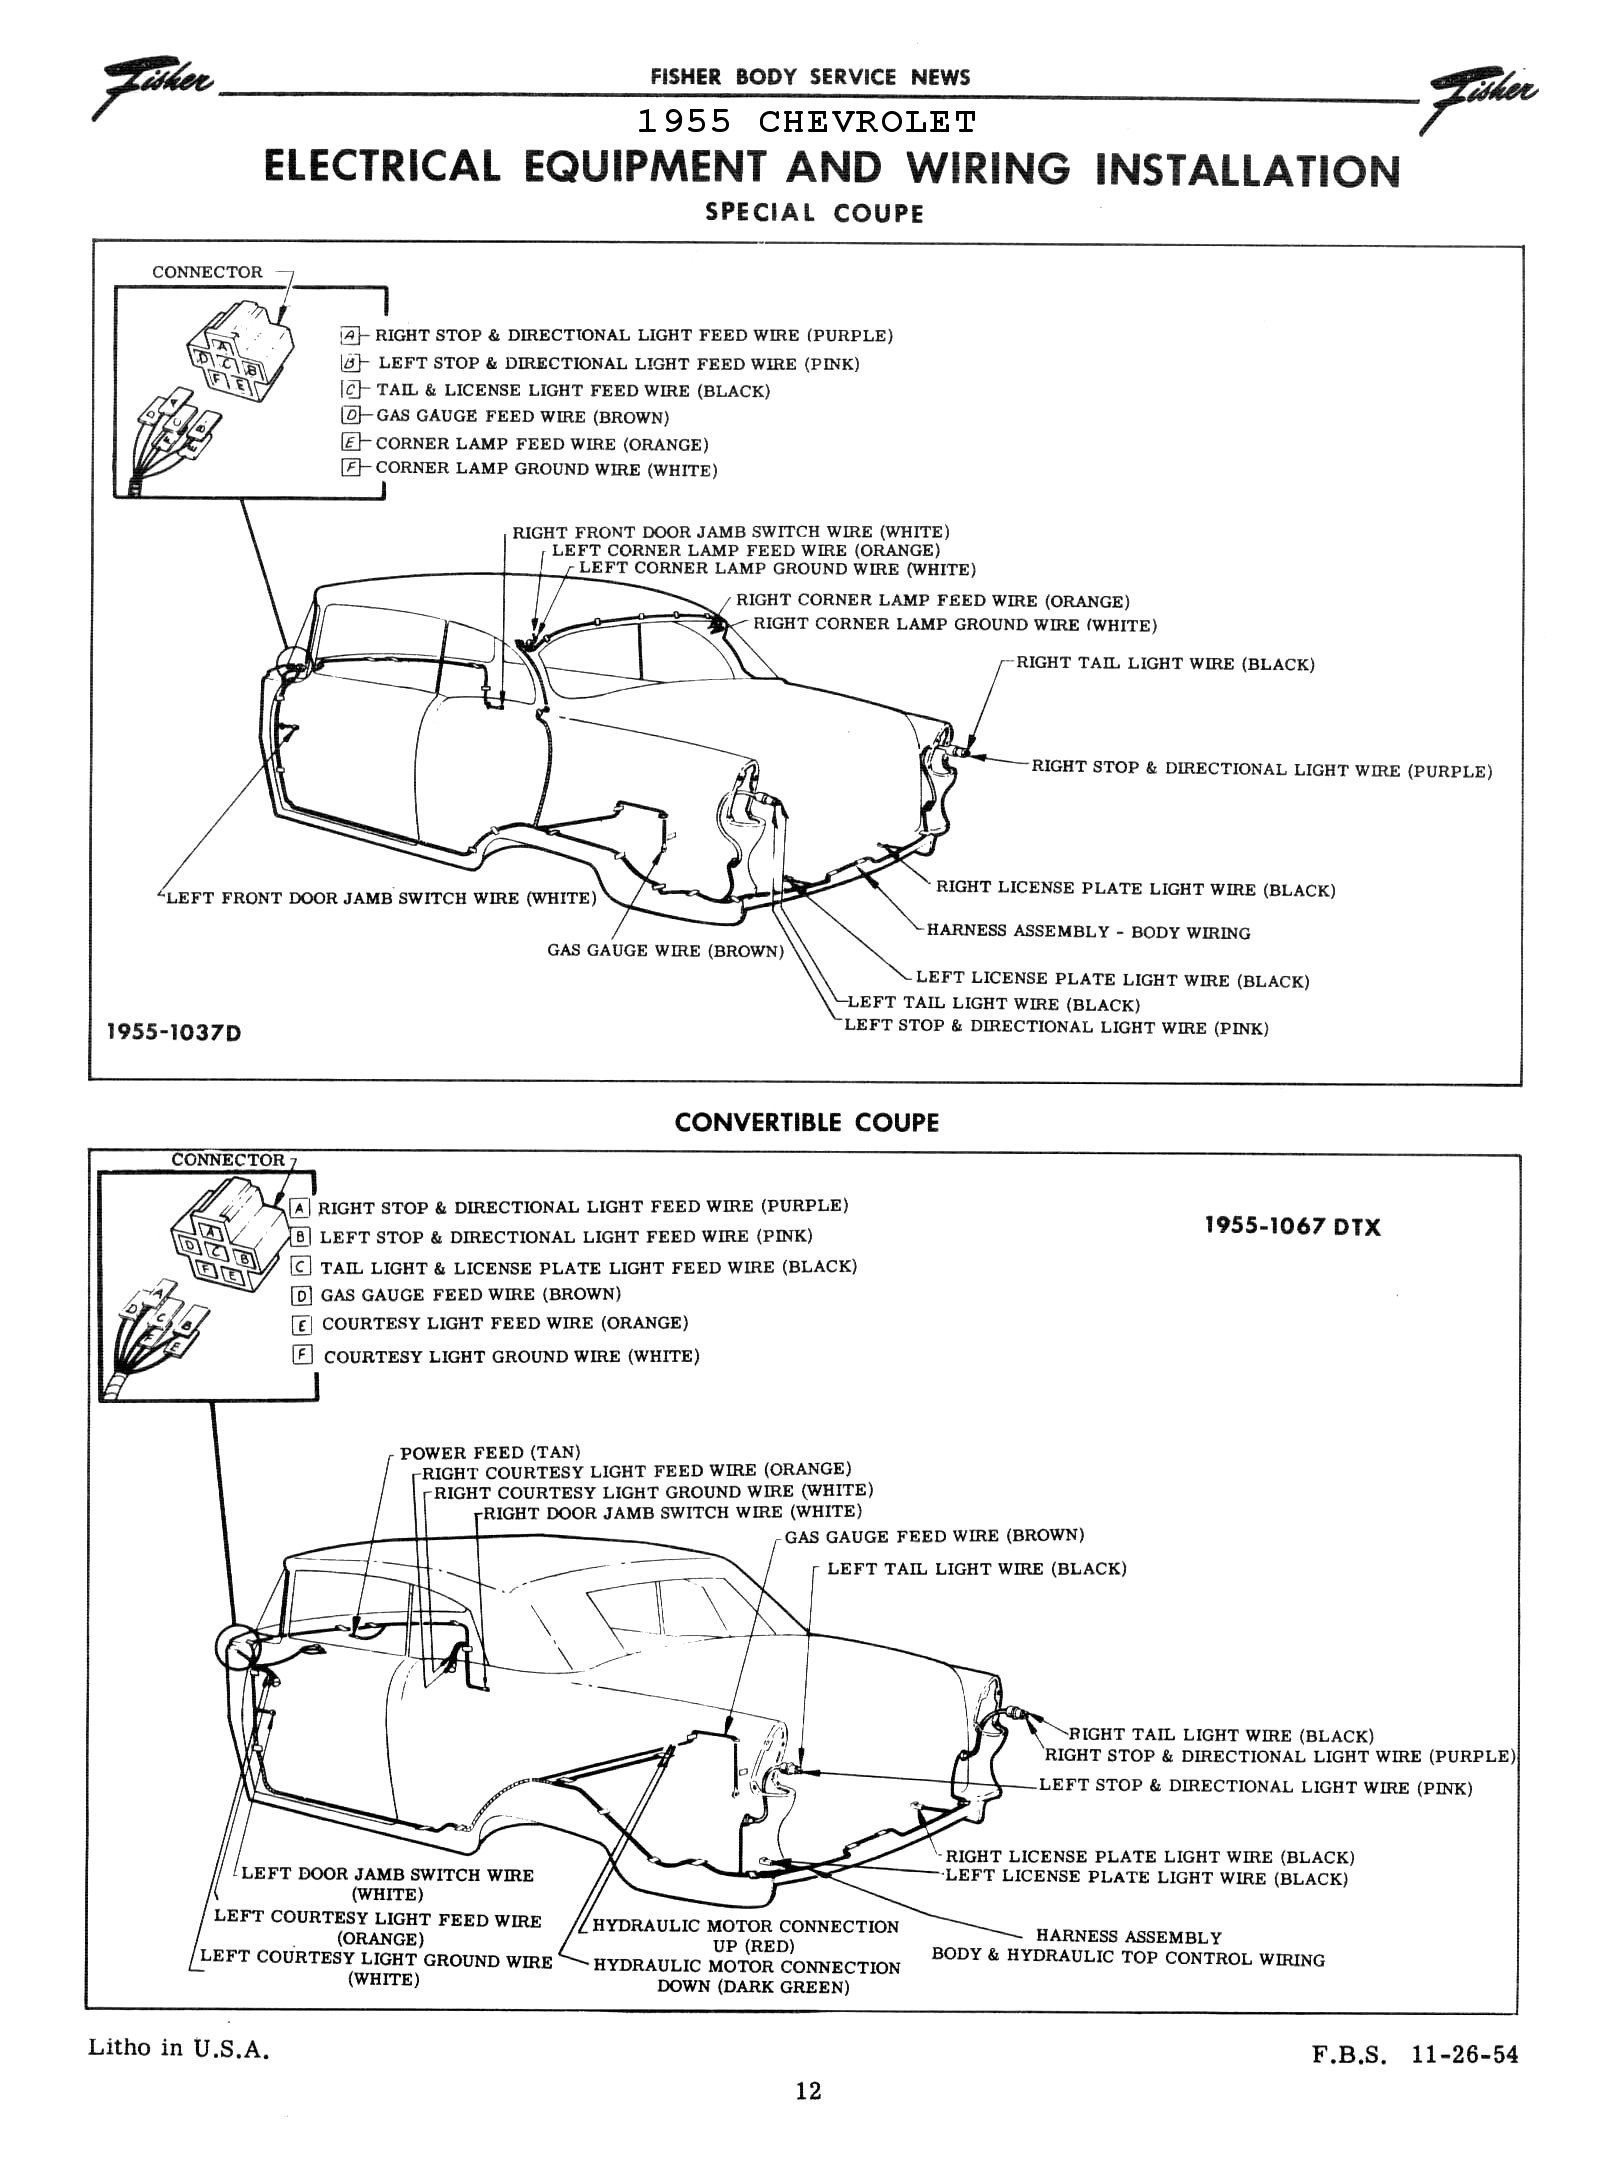 55fsn140612 chevy wiring diagrams 1954 Pontiac Chieftain at n-0.co